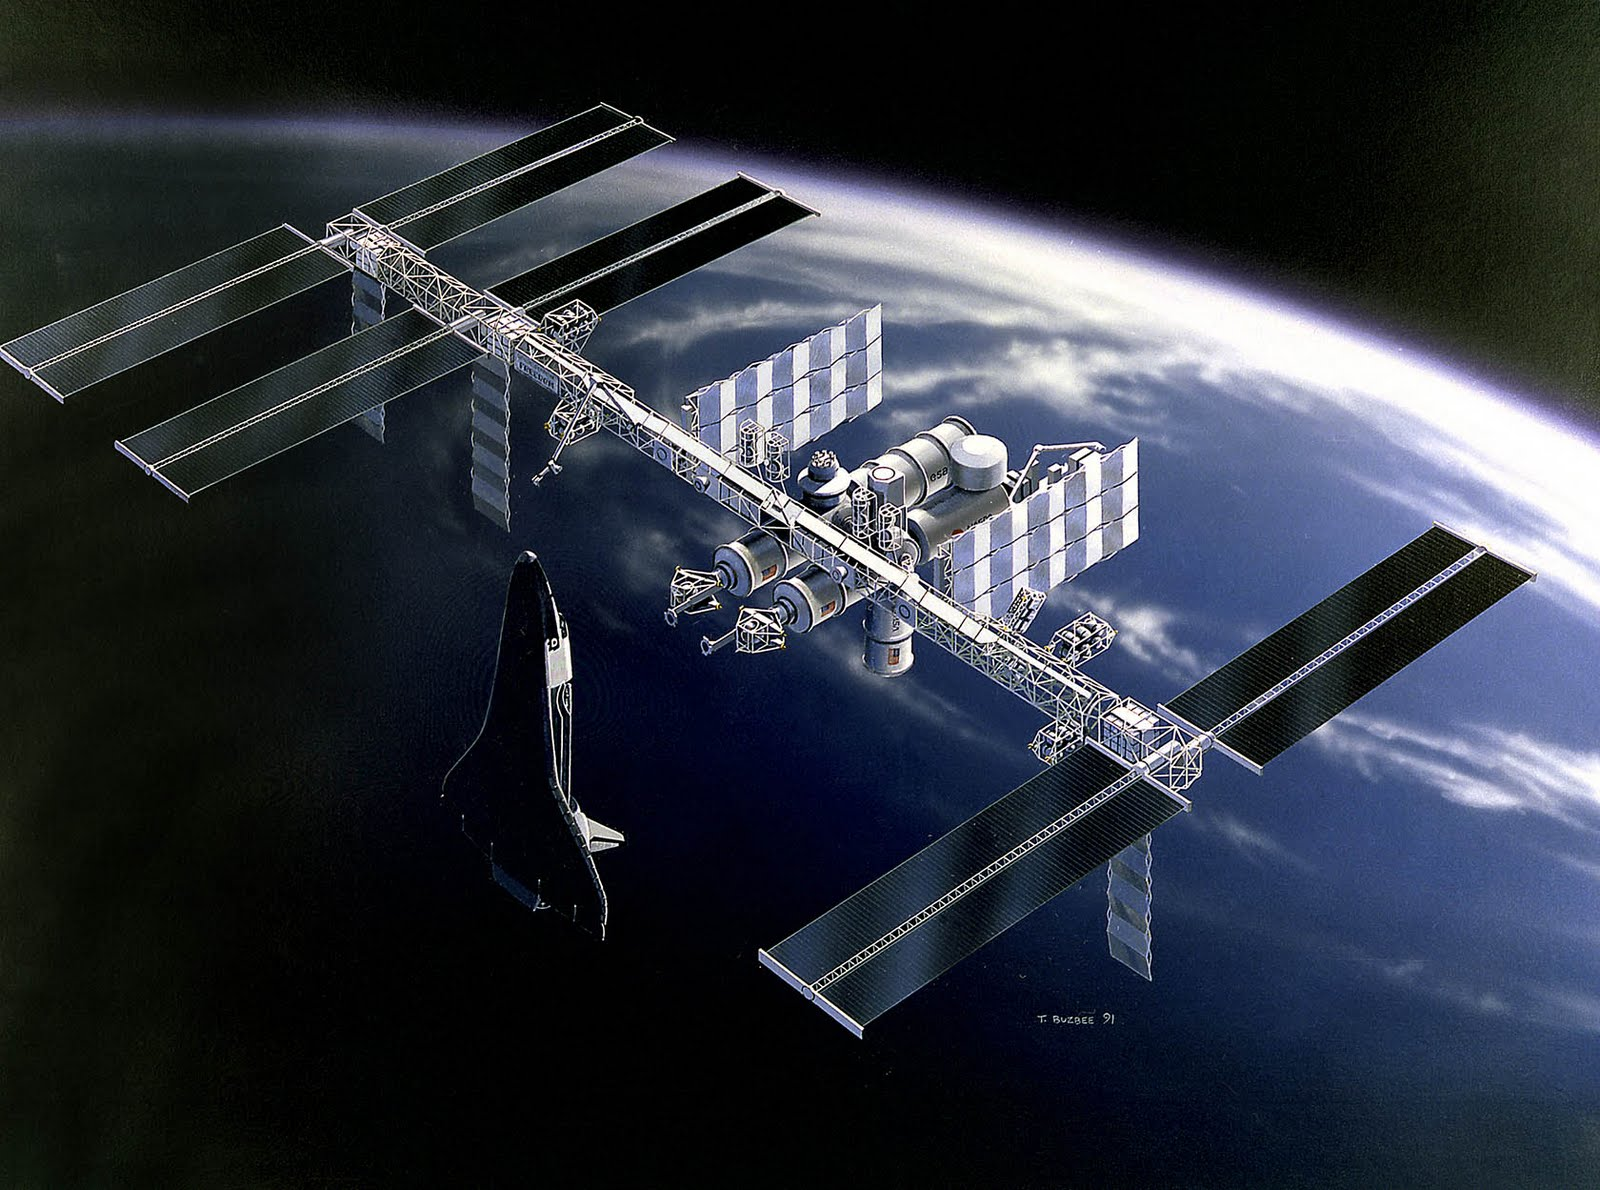 Free wallpapers international space station wallpaper - Space station wallpaper ...